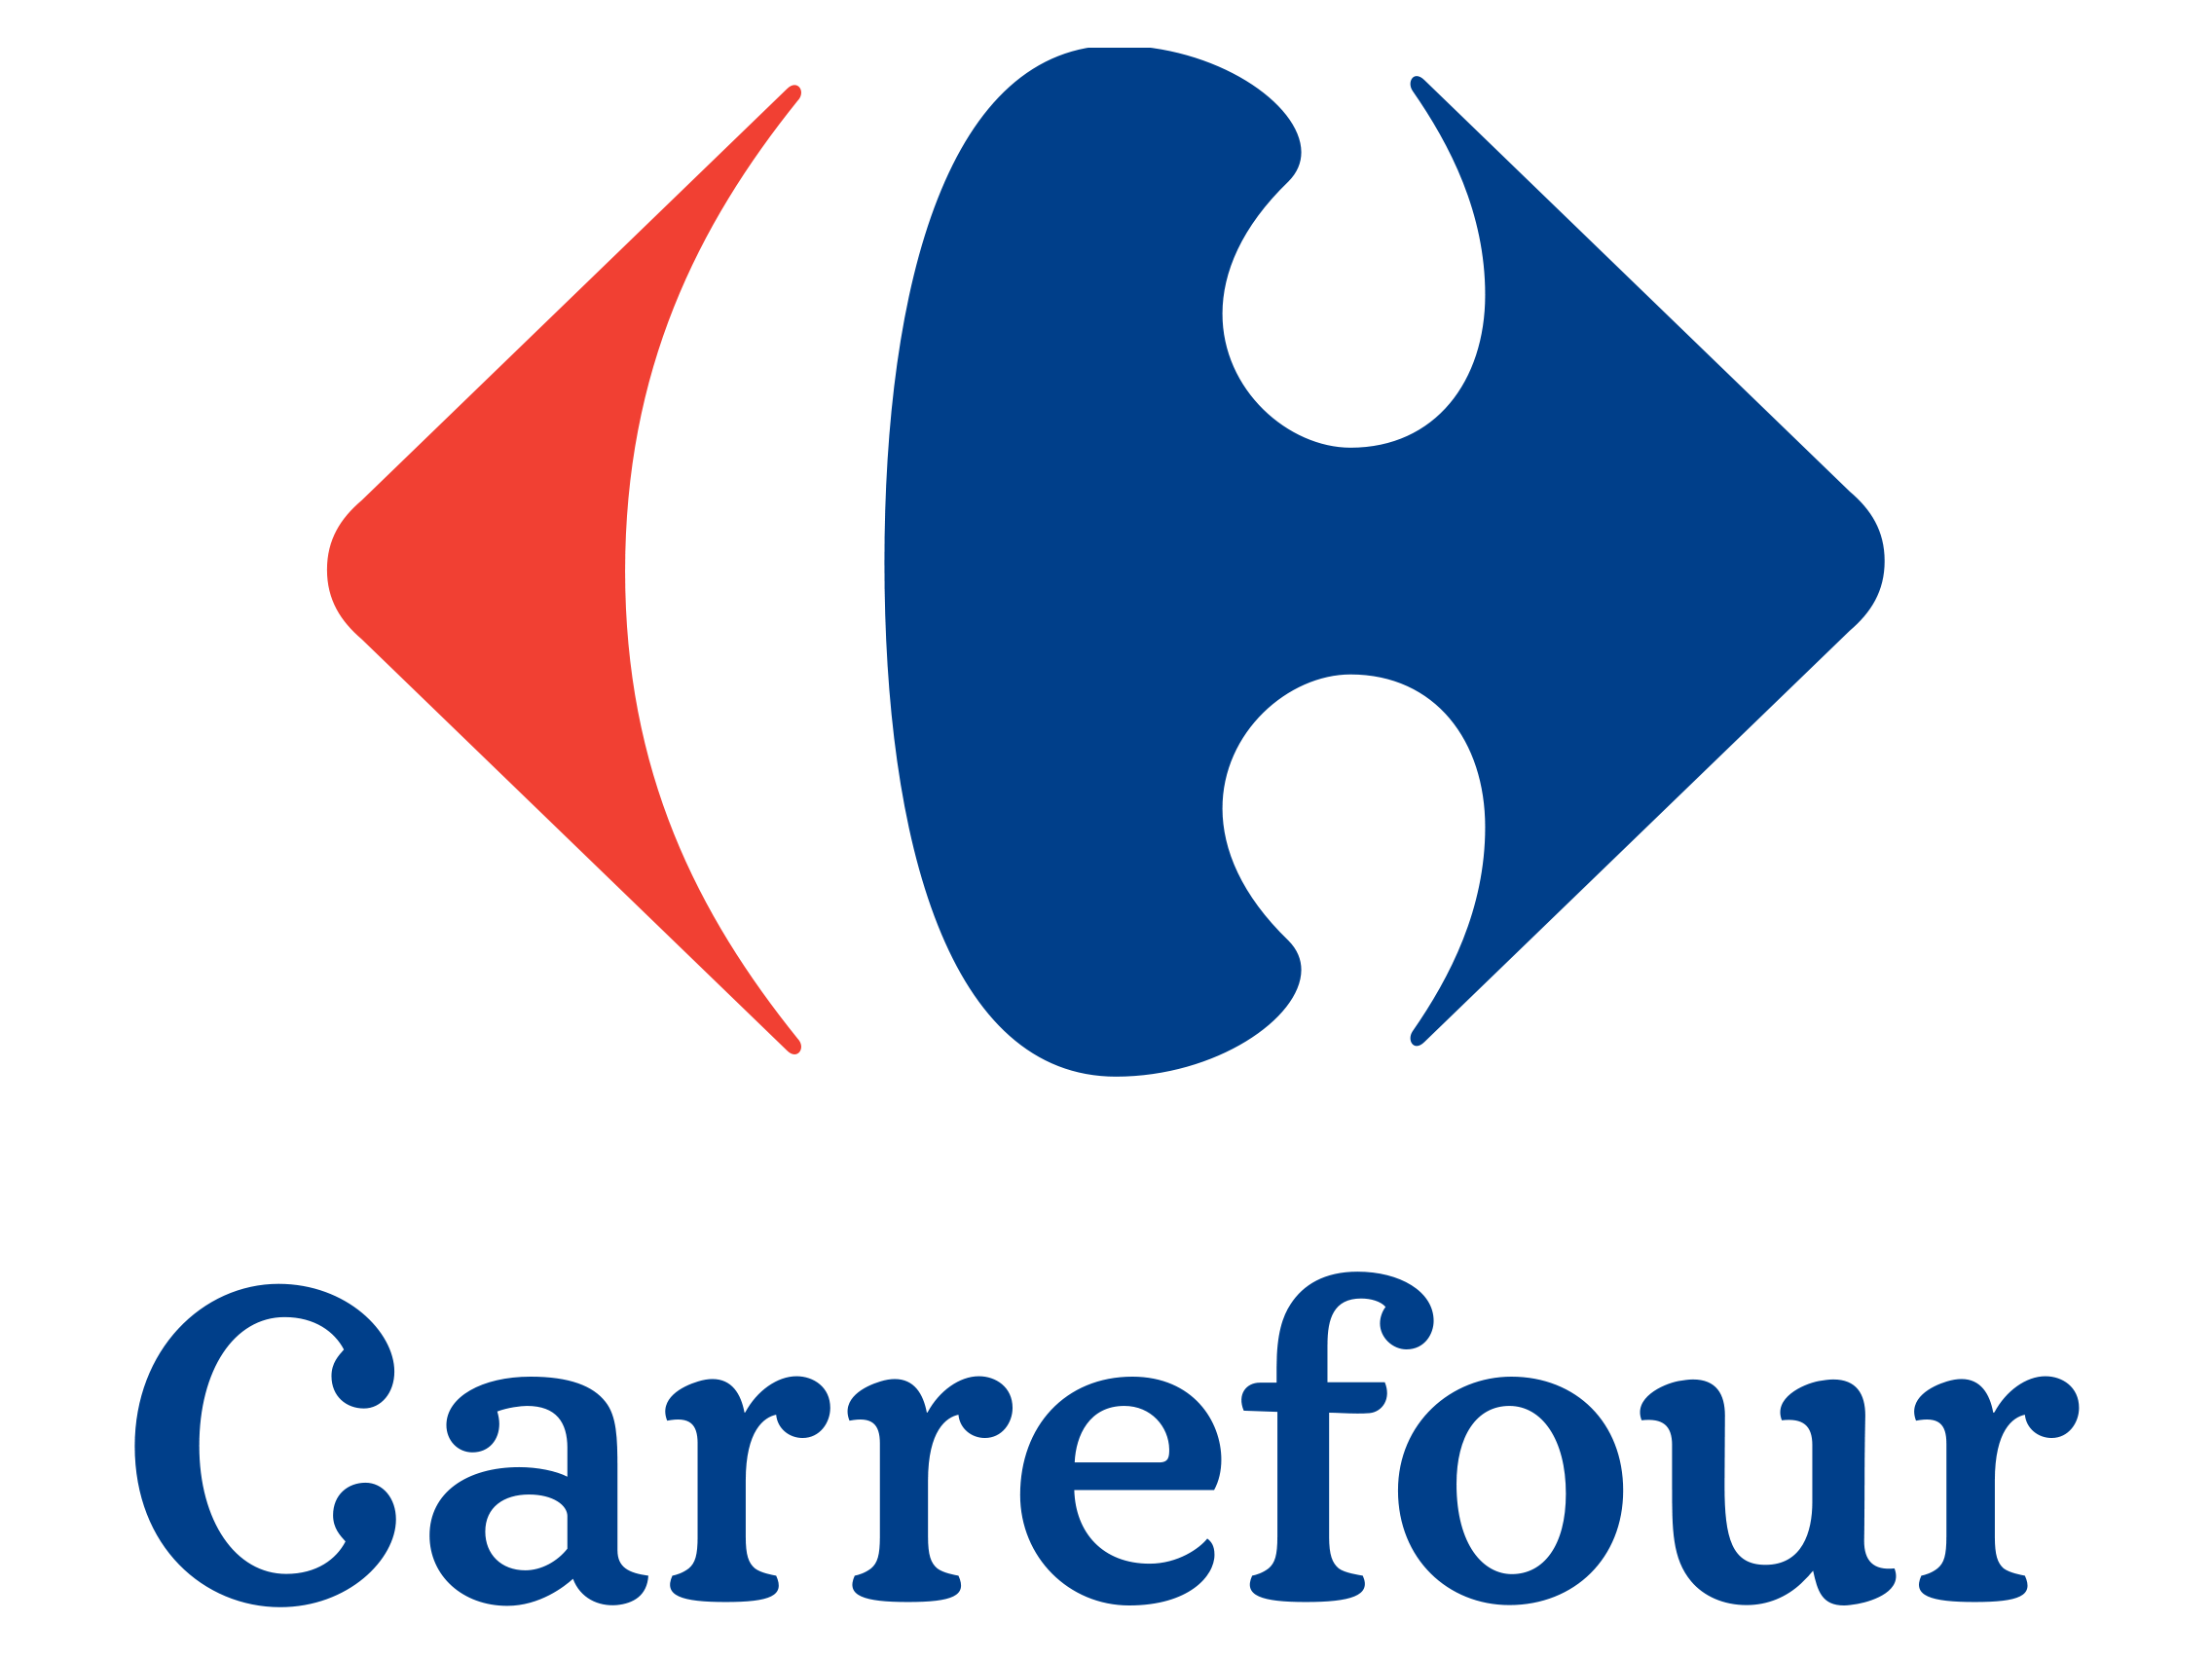 Carrefour-logo.png